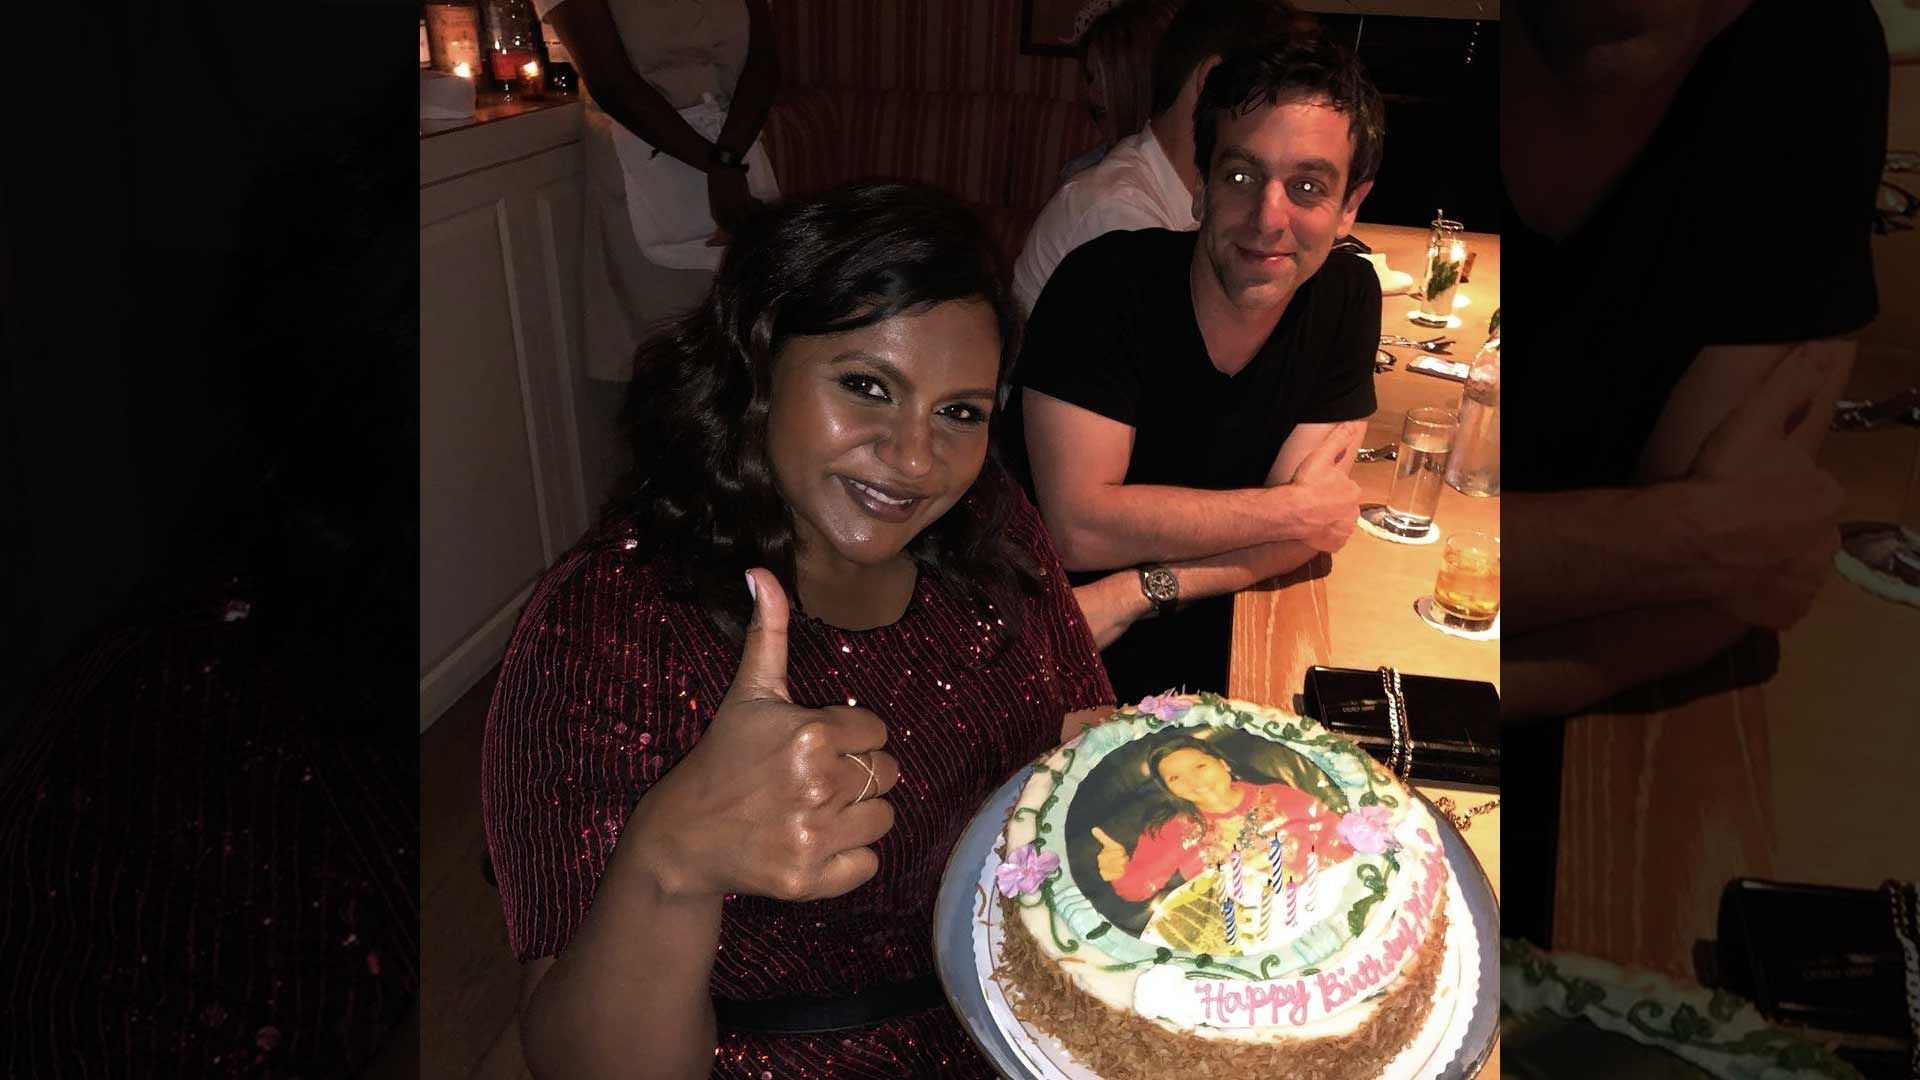 Fantastic Mindy Kaling Celebrates 40Th Birthday With The Office Co Star Funny Birthday Cards Online Sheoxdamsfinfo